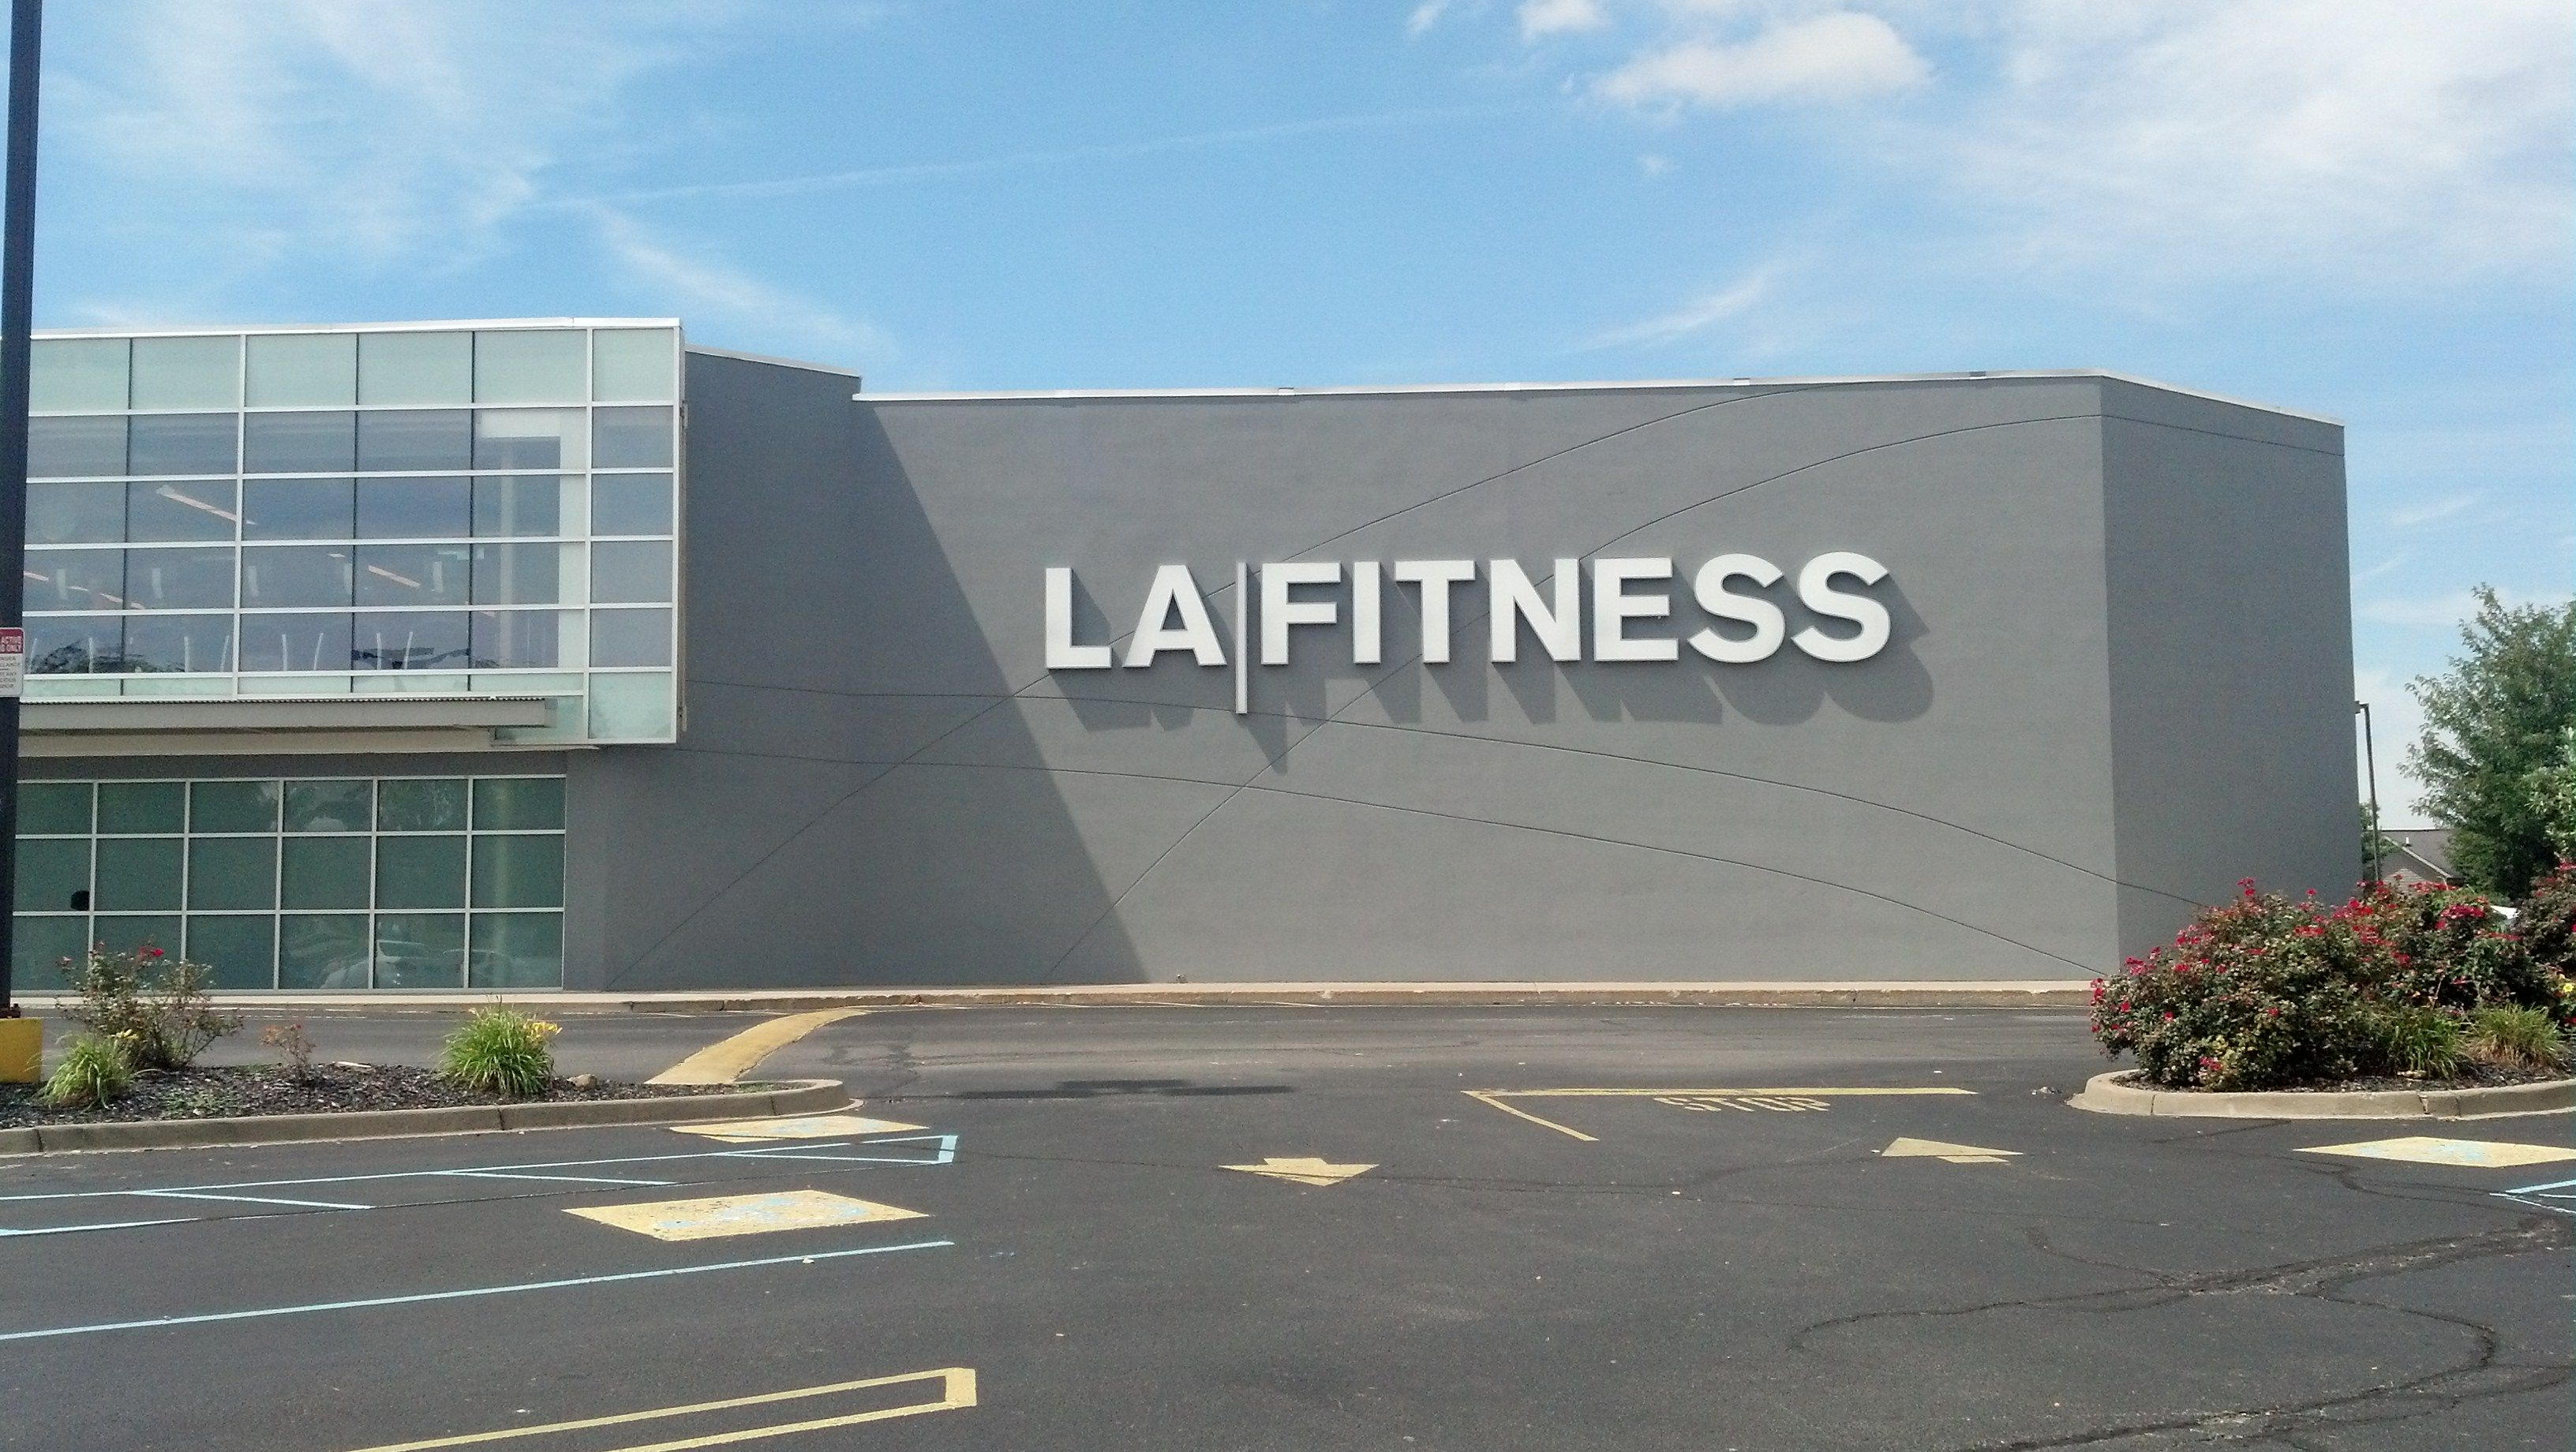 La Fitness Channel Letter Sign Located On Taylorsville Road In Louisville Ky Lafitness Channel Letter Signs Sign Company Channel Letters